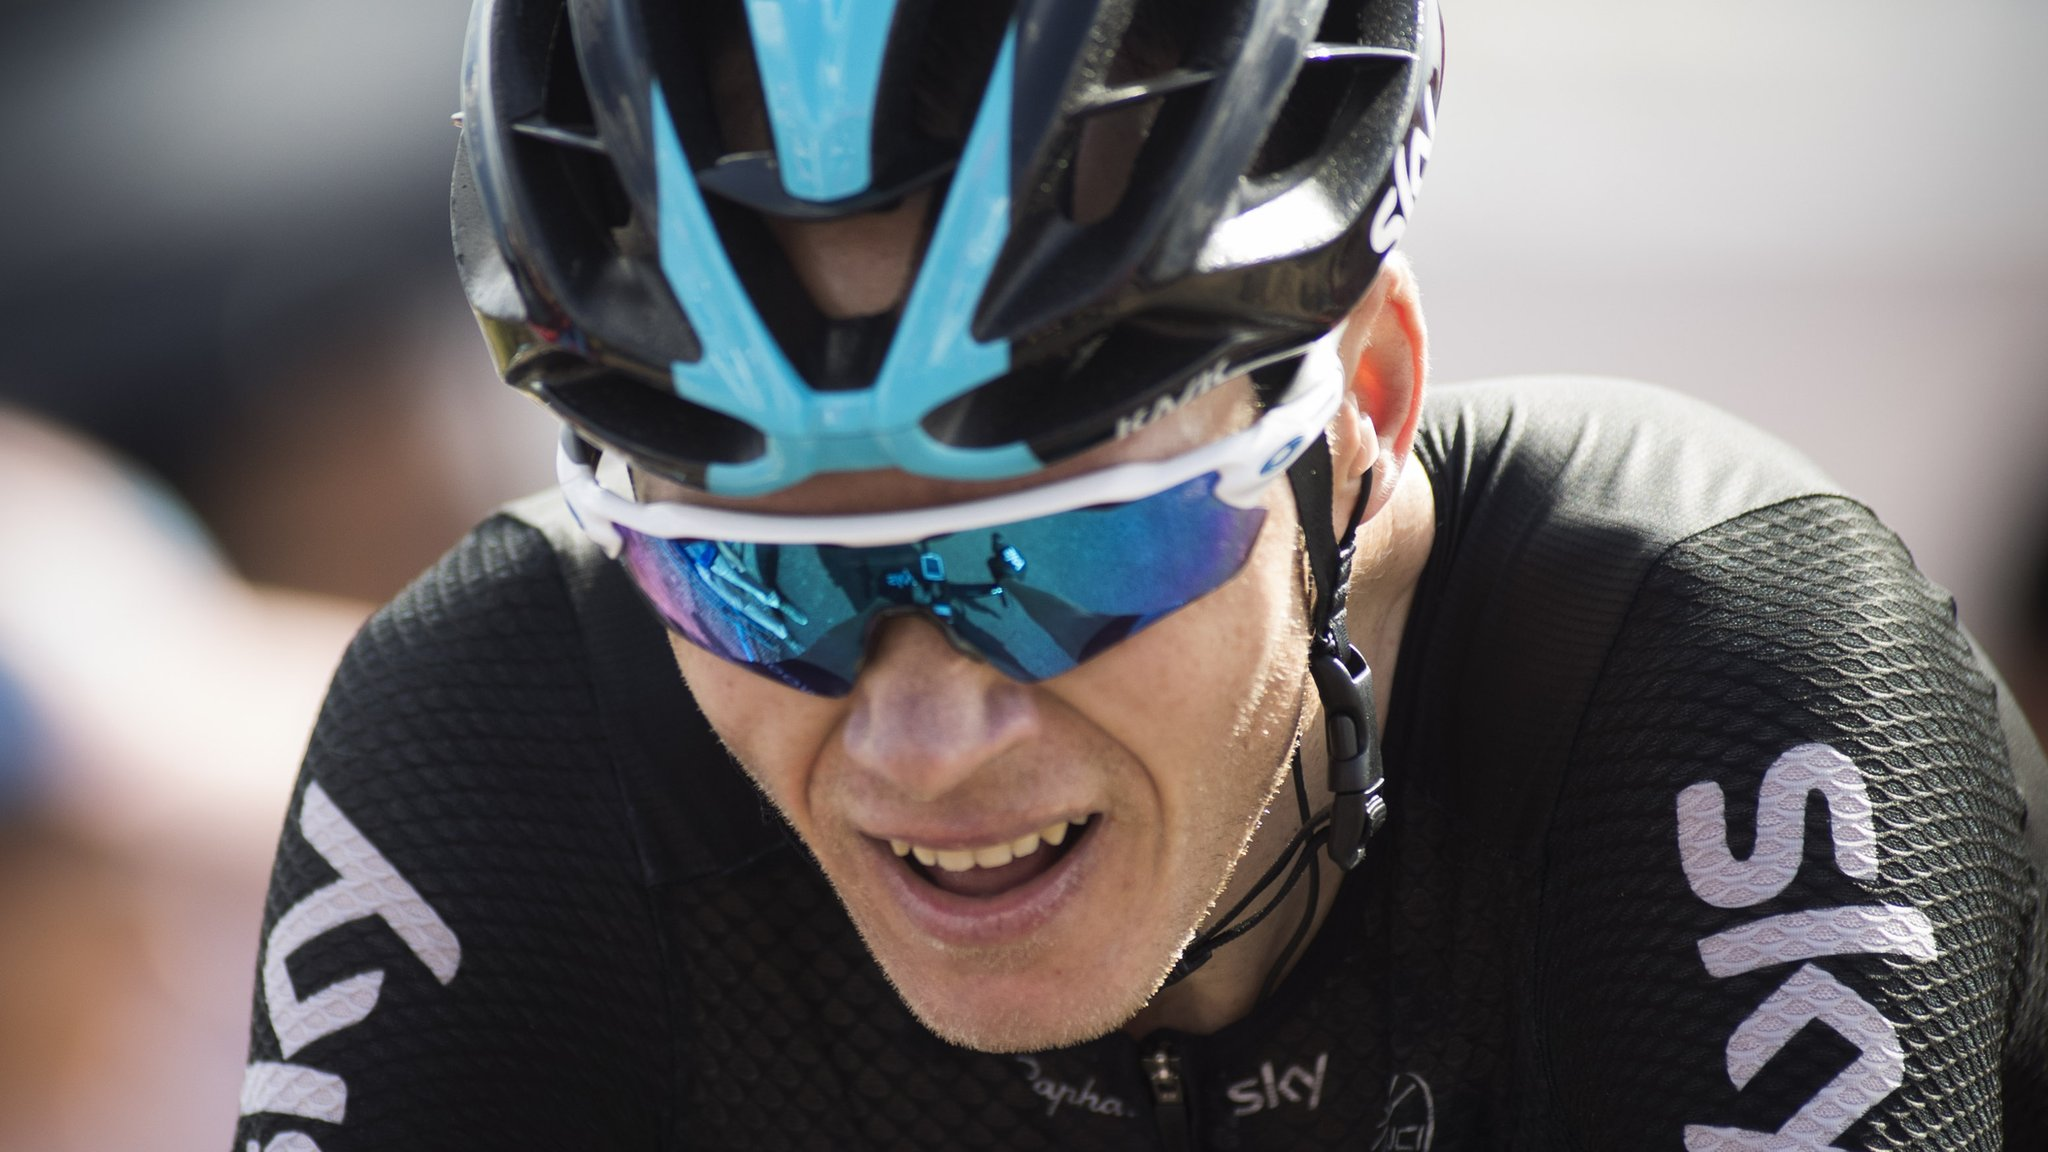 Froome falls to fourth in Vuelta a Espana